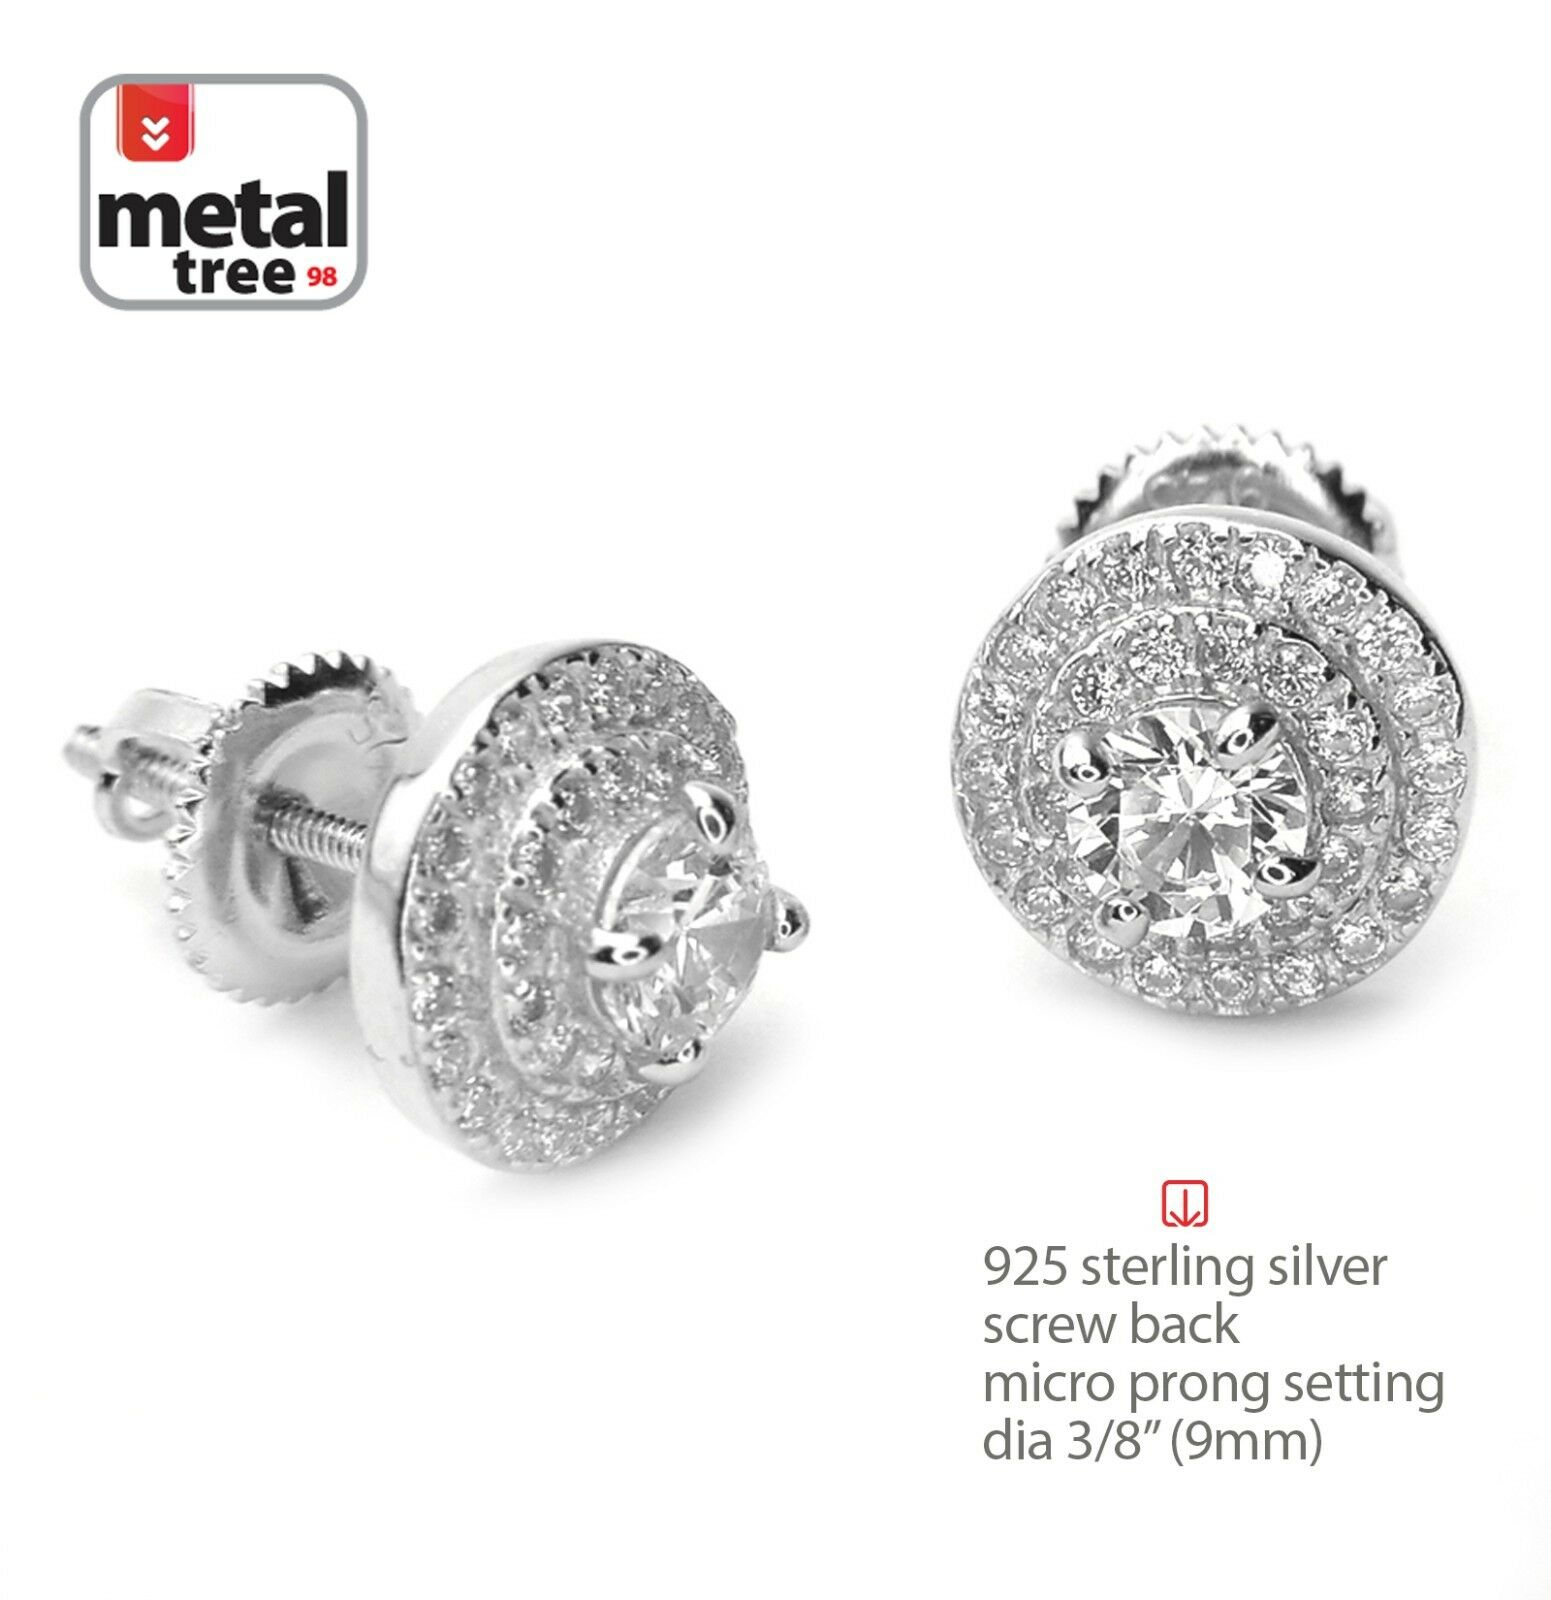 jewelry find earrings from opal jstyle products steel s watches men womens stud created online studs brand piercin at mens and ear stainless